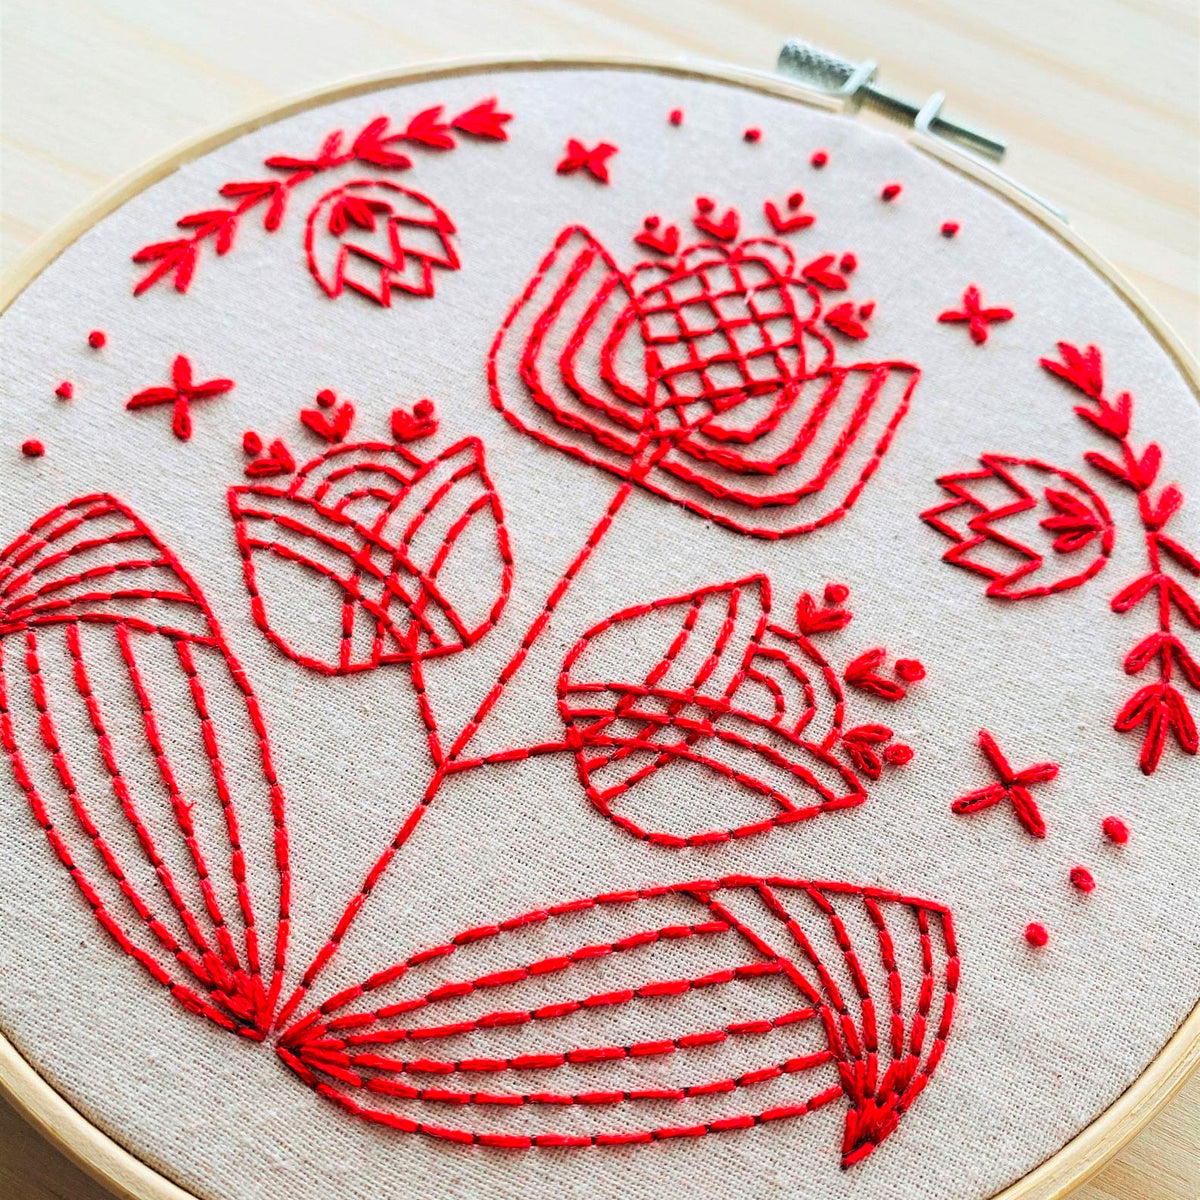 Tulips in Symmetry Hand Embroidery Kit